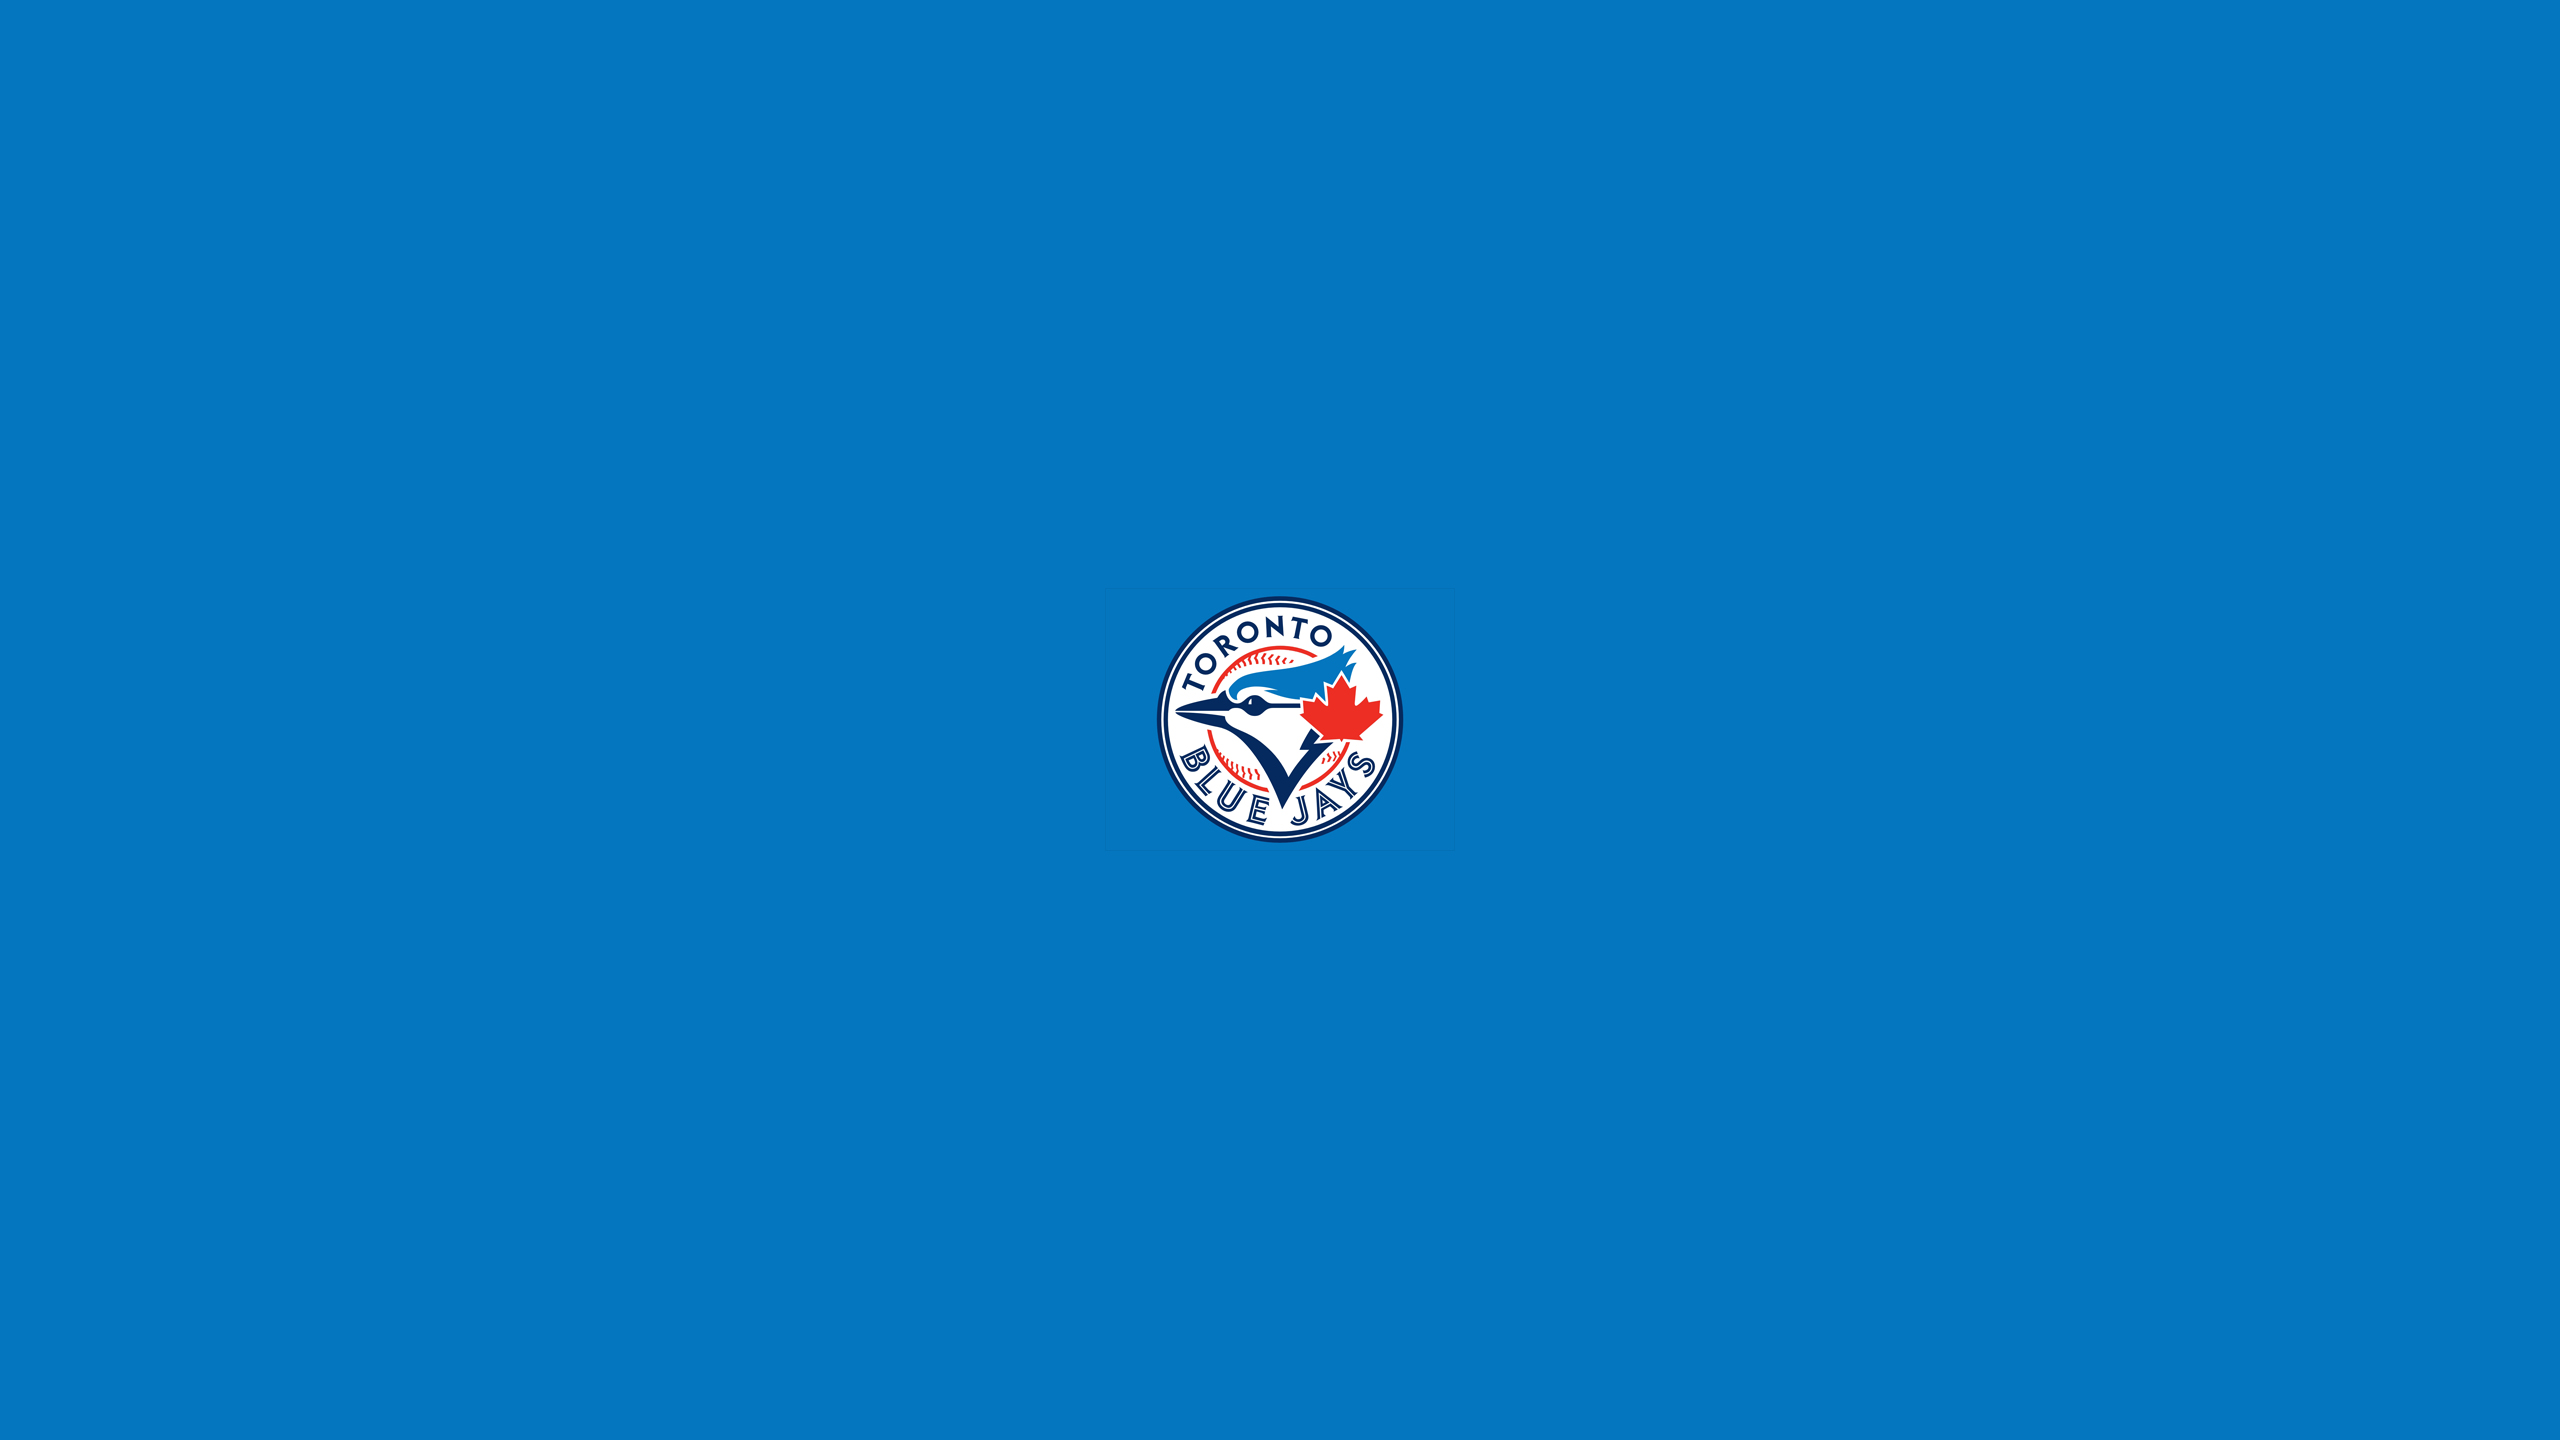 Free Download 7 Hd Toronto Blue Jays Wallpapers Hdwallsourcecom